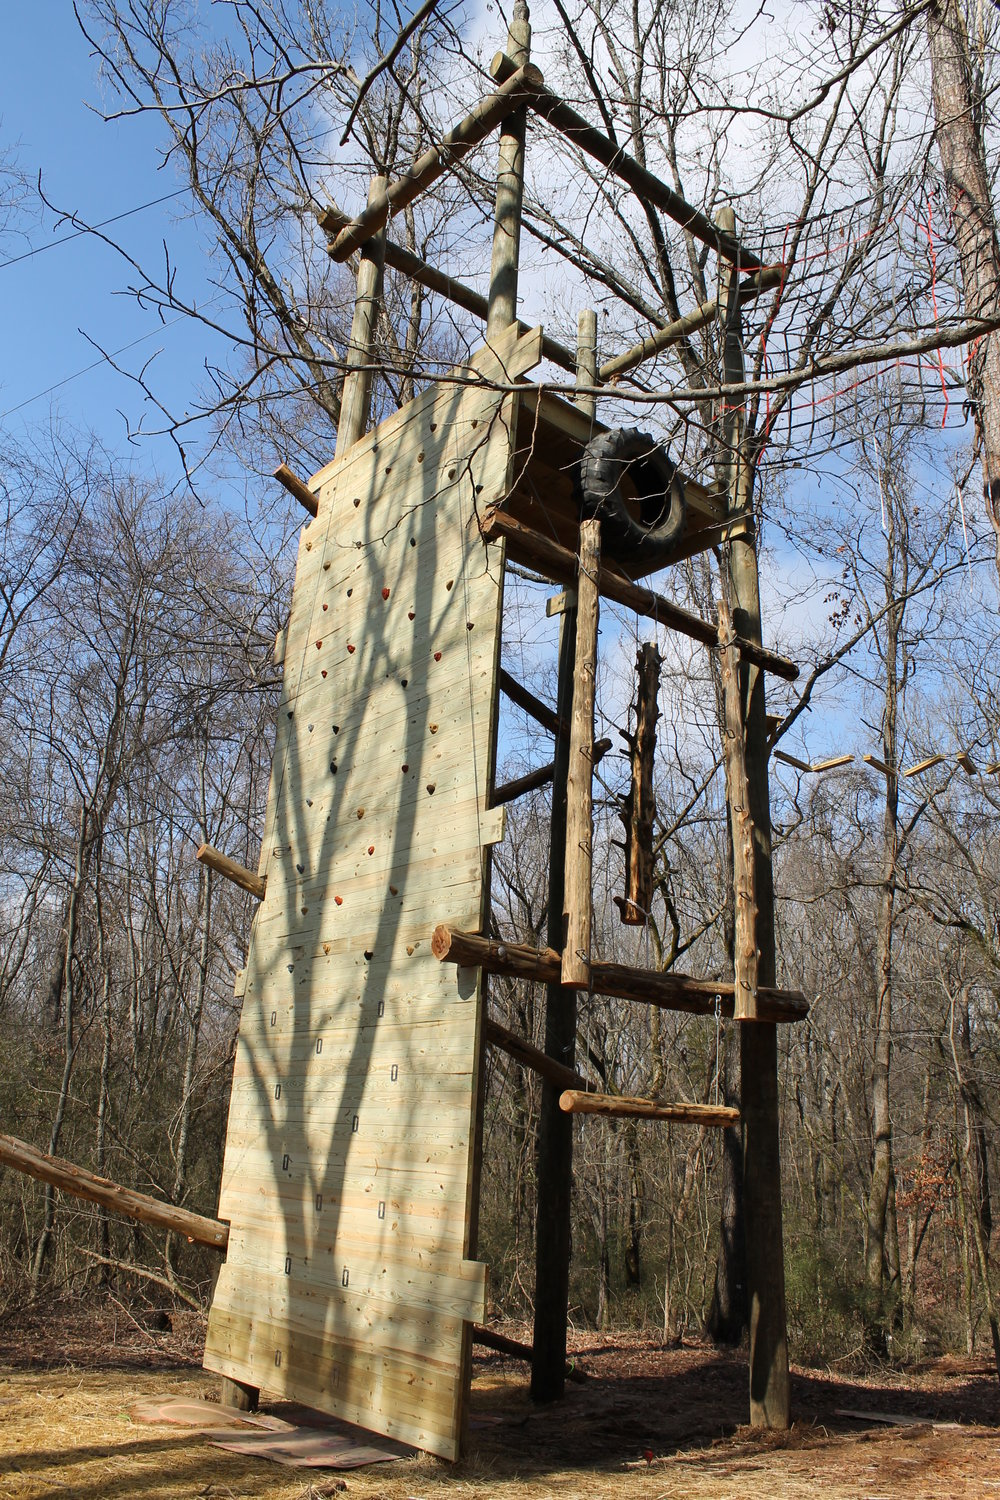 ASCEND High Adventure Course- extra fee